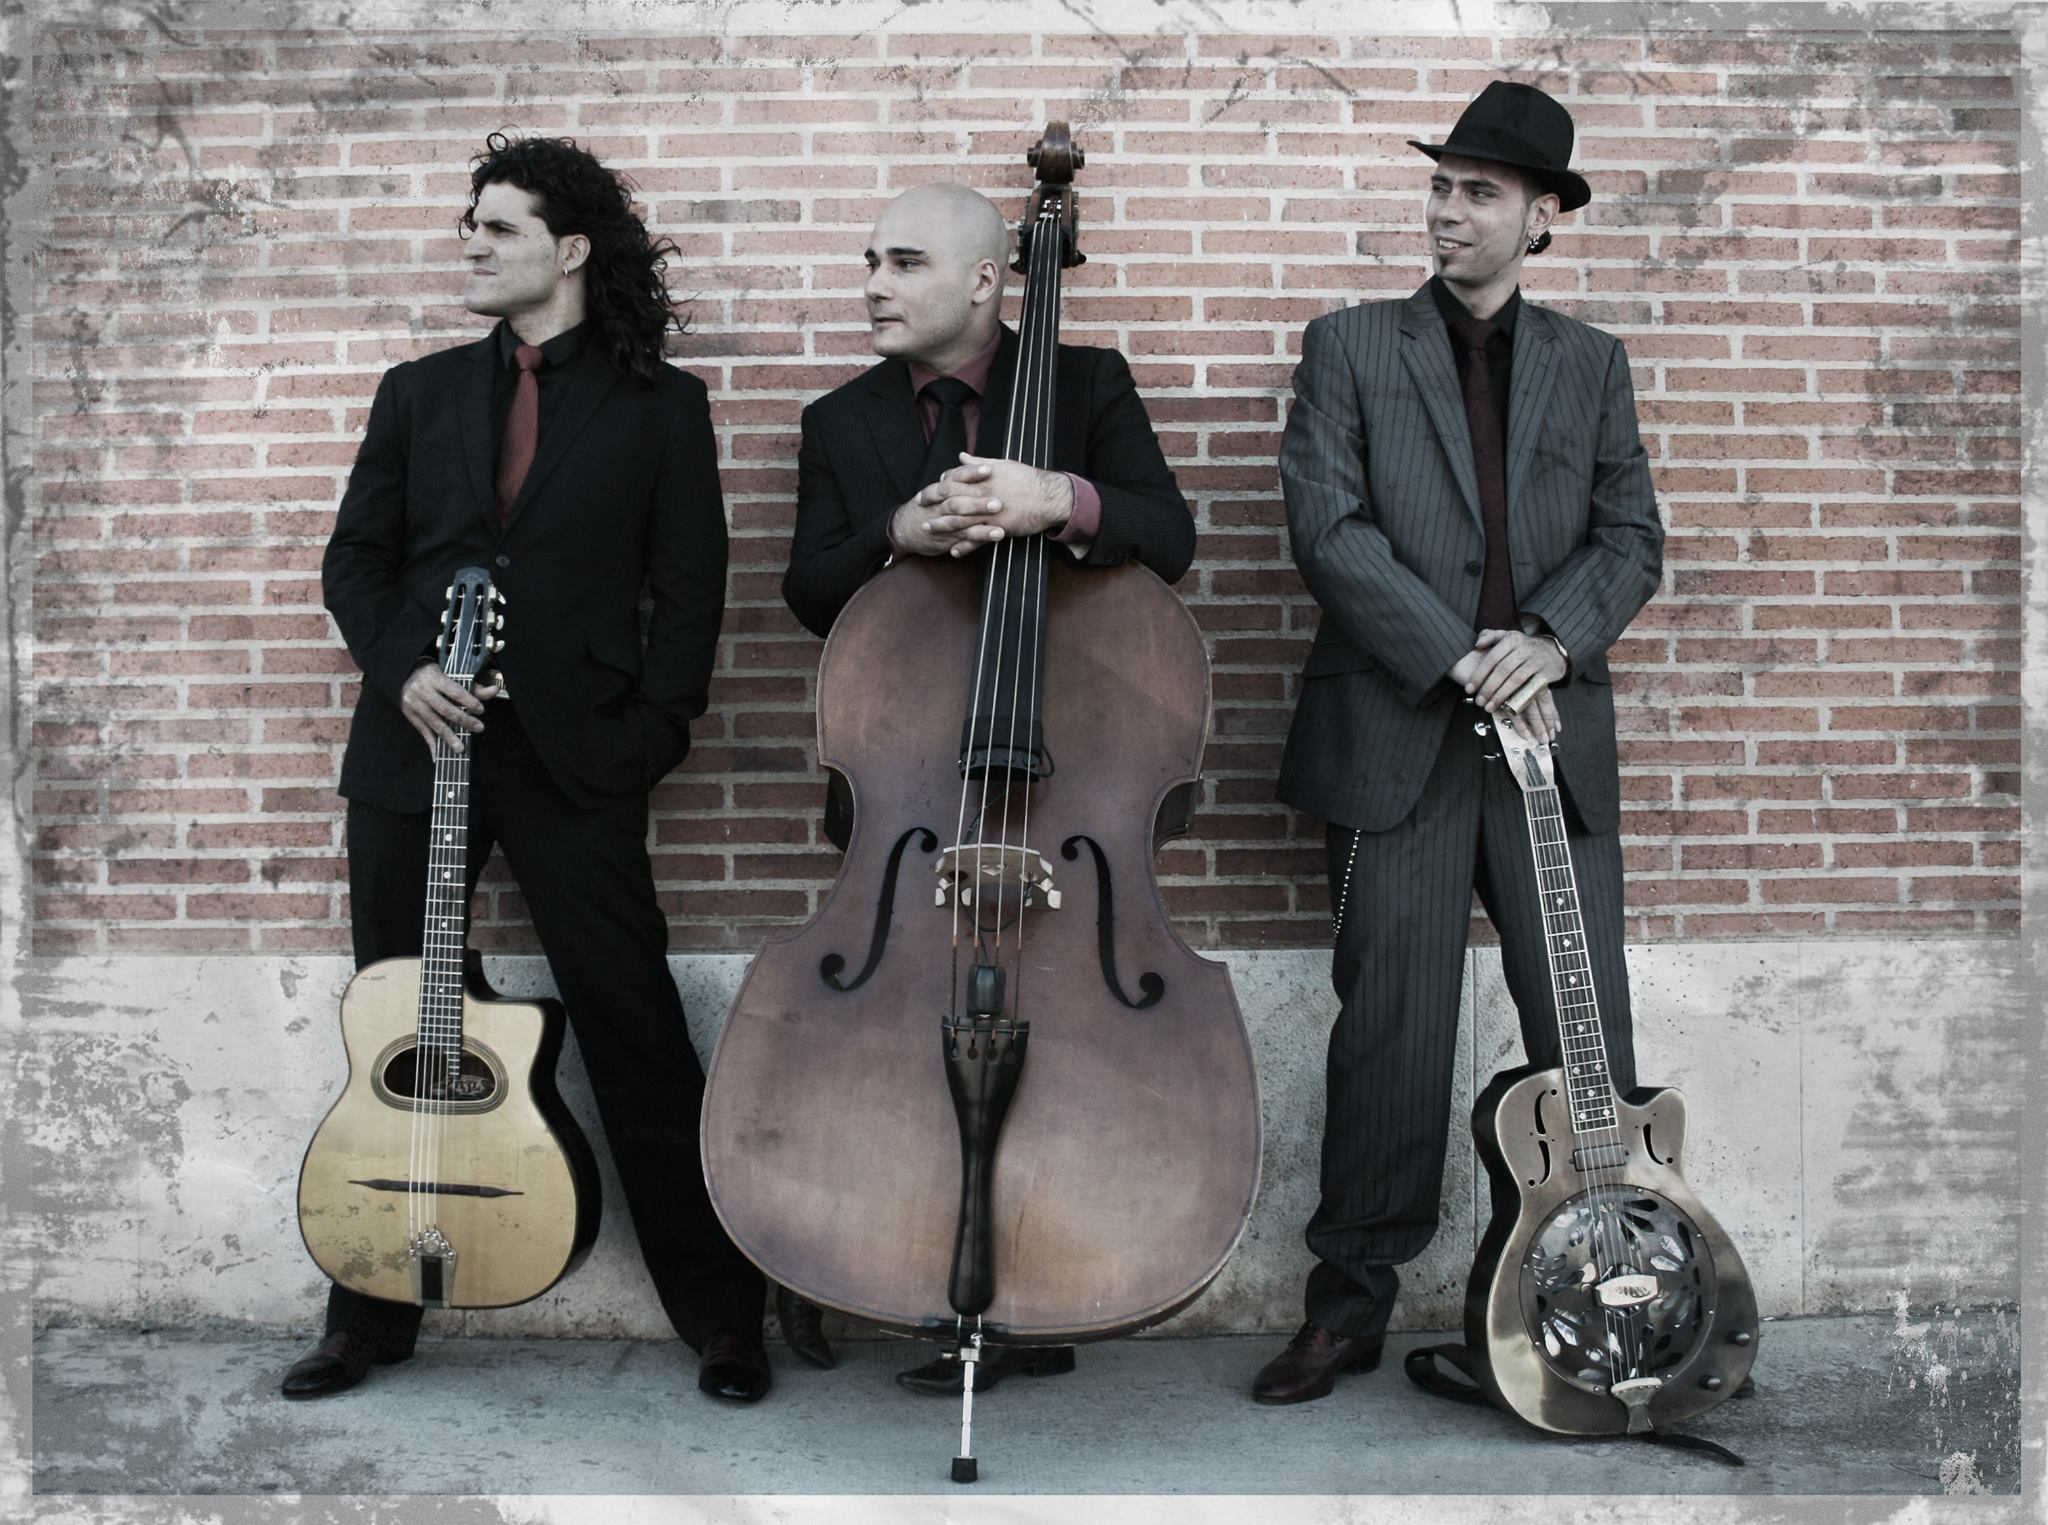 From the left:  Albert Bello (guitar, ukulele), Rod Deville (double bass) and Hernan Senra (dobro, guitar, ukulele)